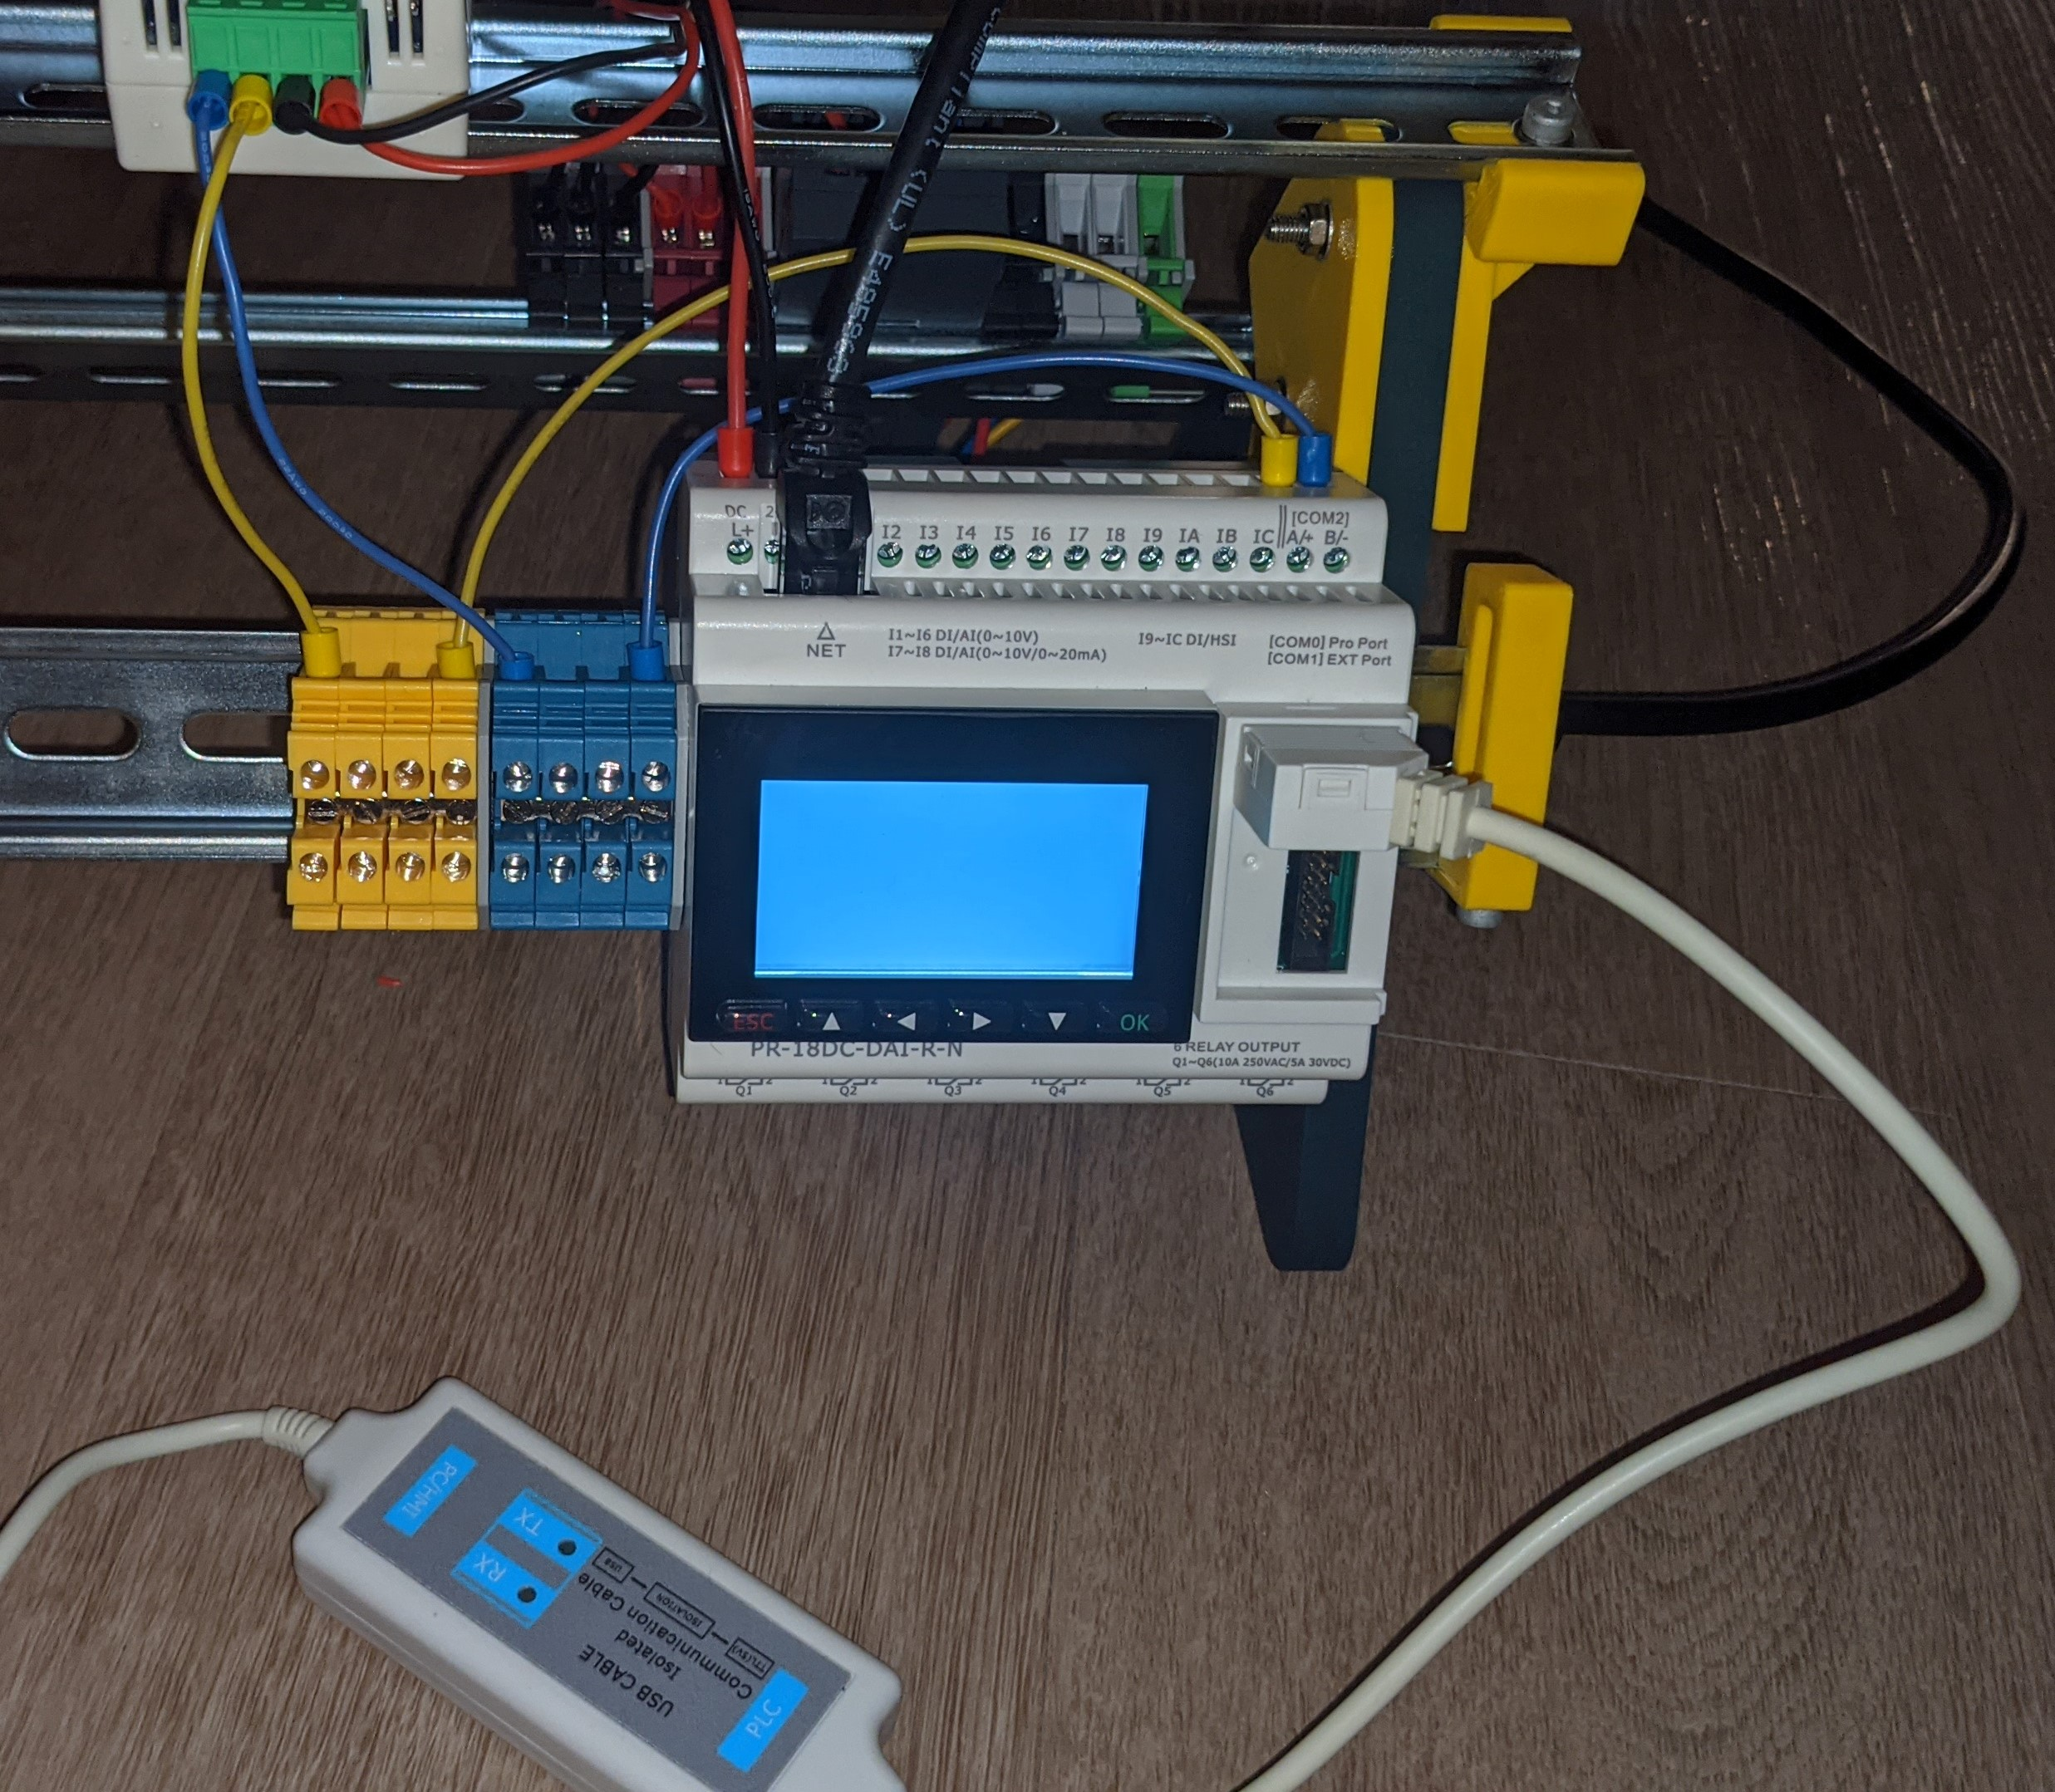 Picture showing the bricked PLC powered up.